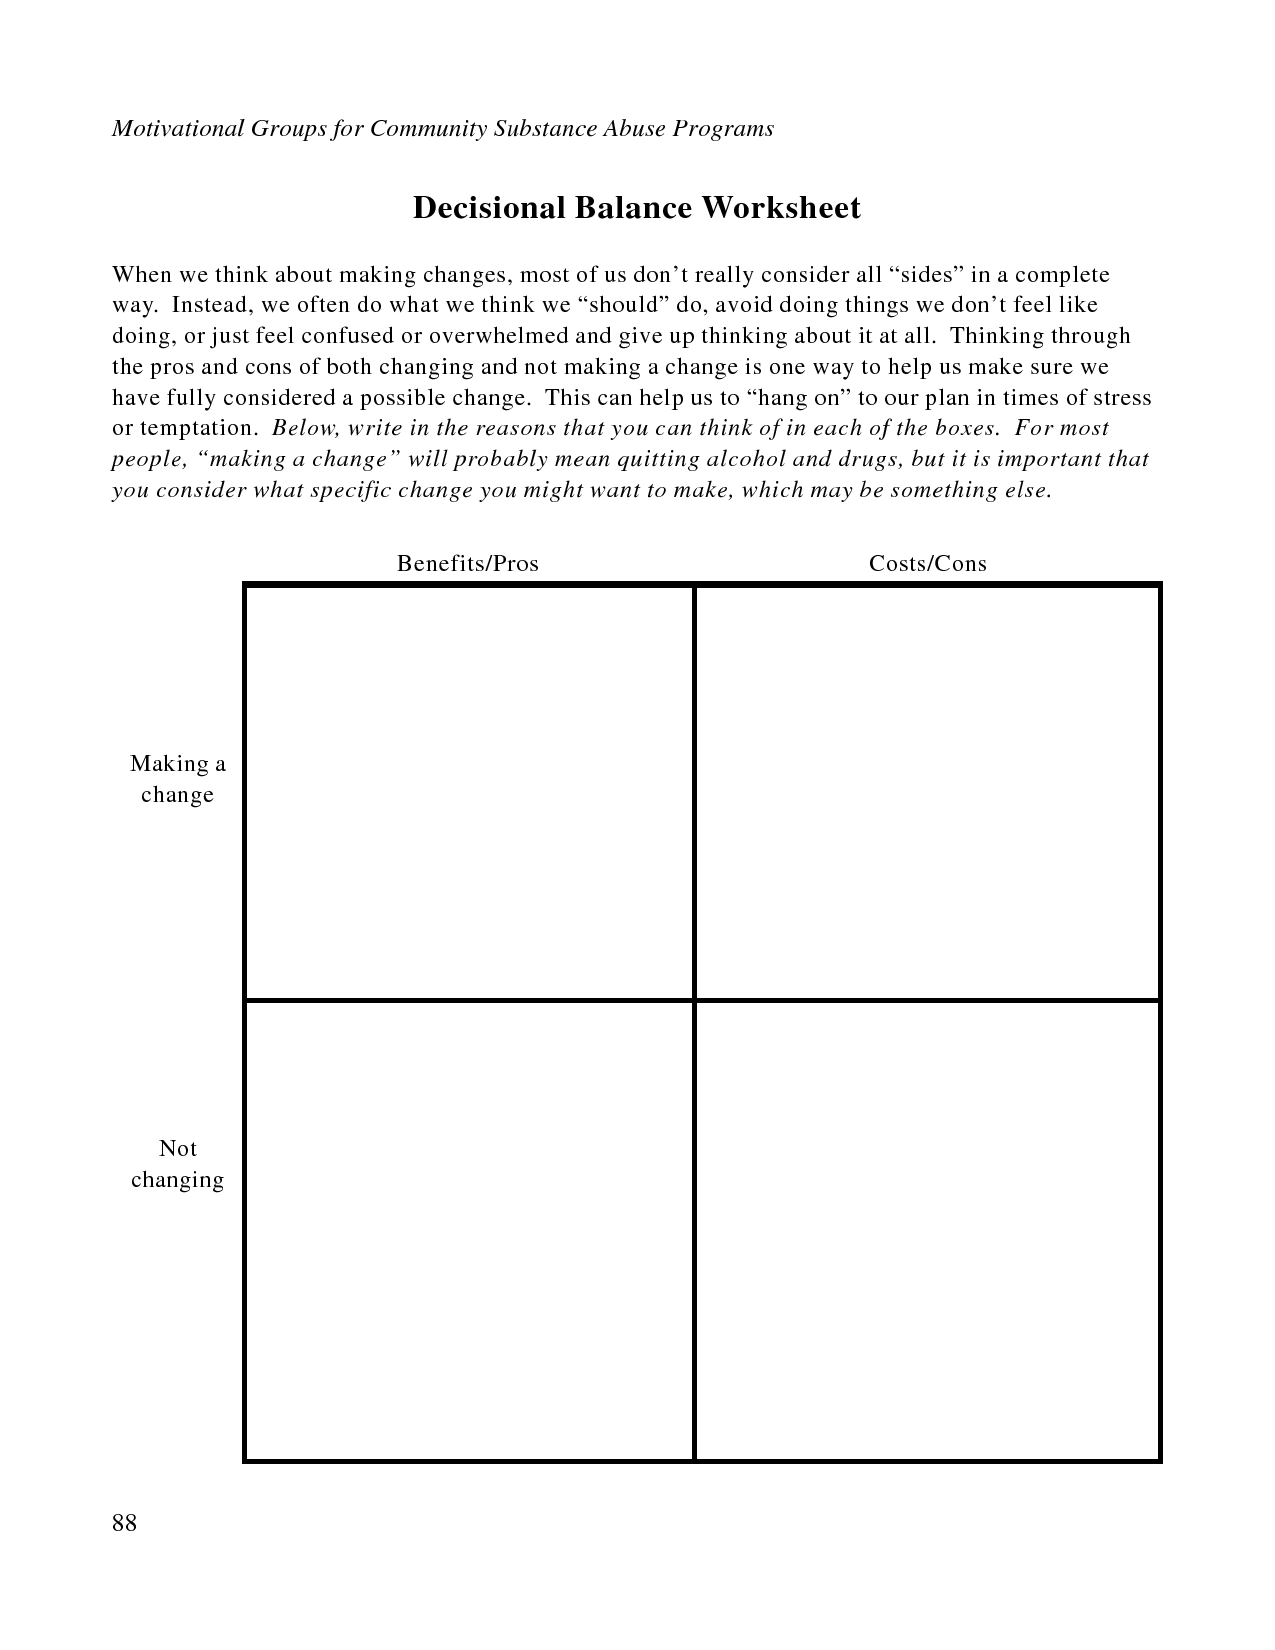 Free Printable Dbt Worksheets